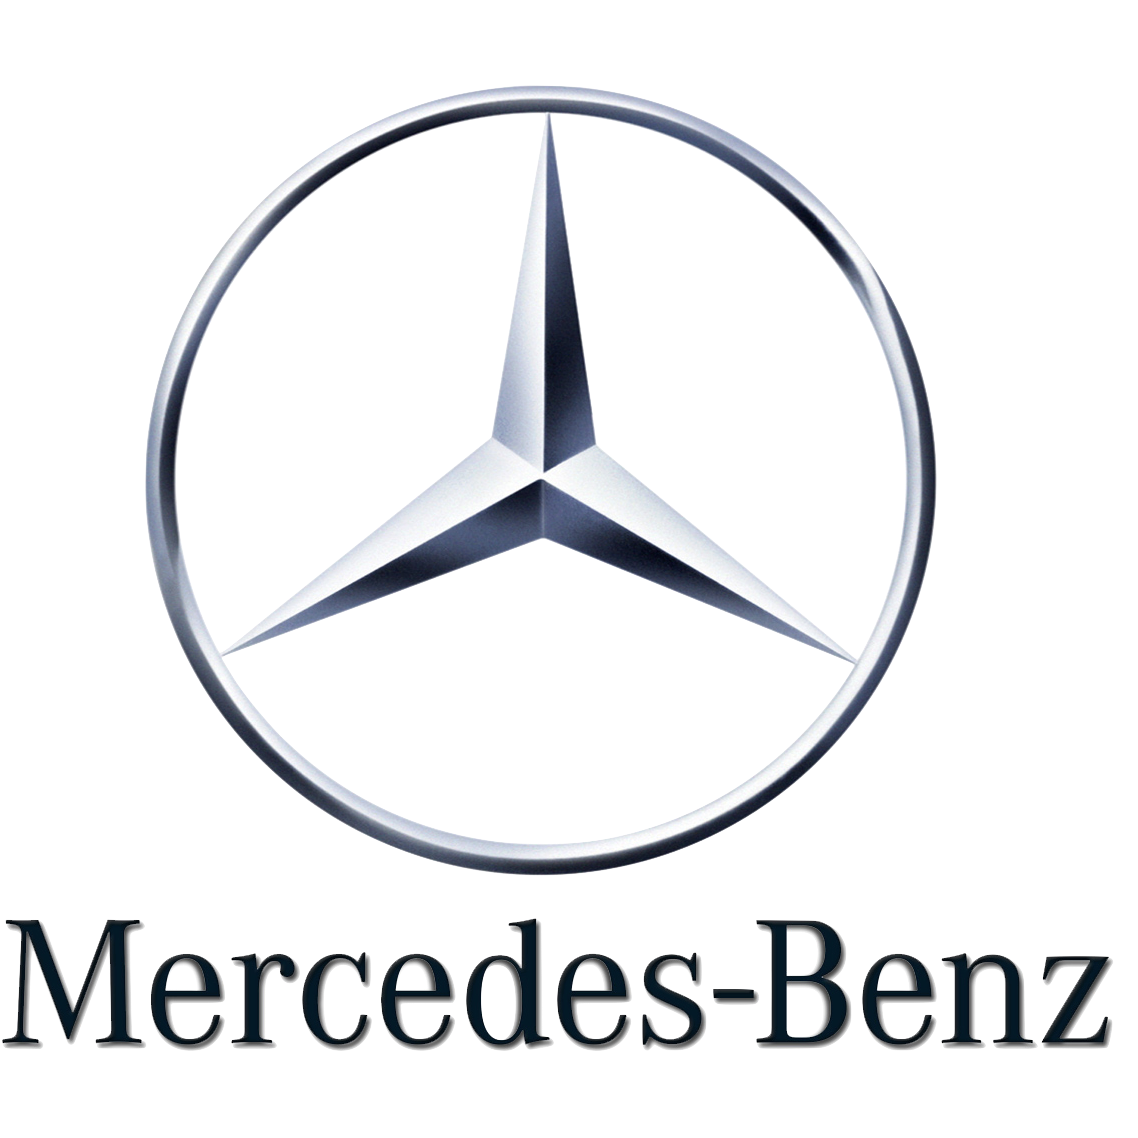 Mercedes-Benz Logo Transparent PNG